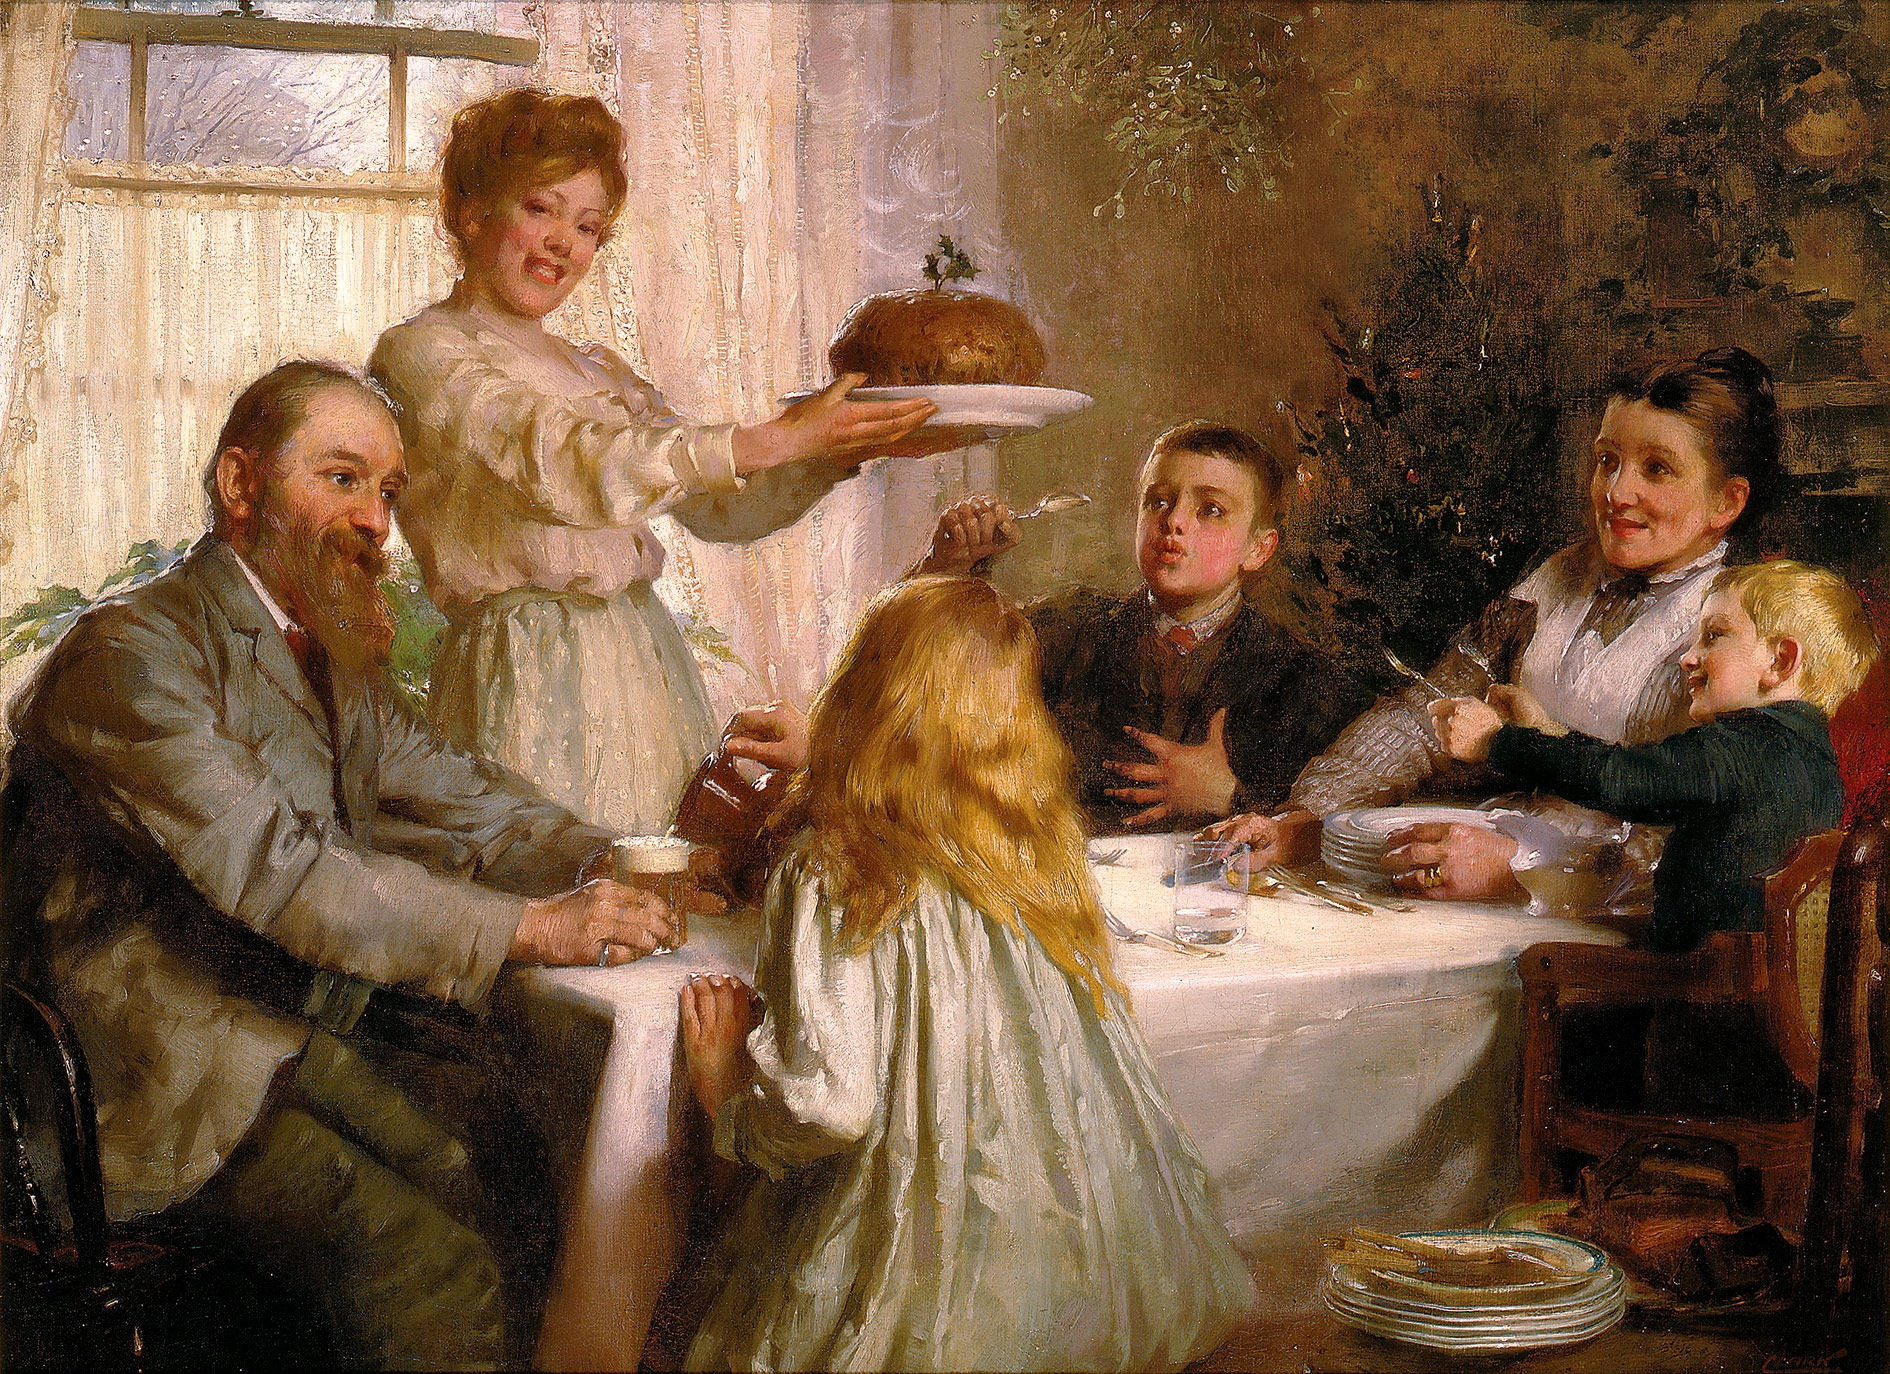 A Christmas Dole by Joseph Clark, (United Kingdom, 1834 - 1926)